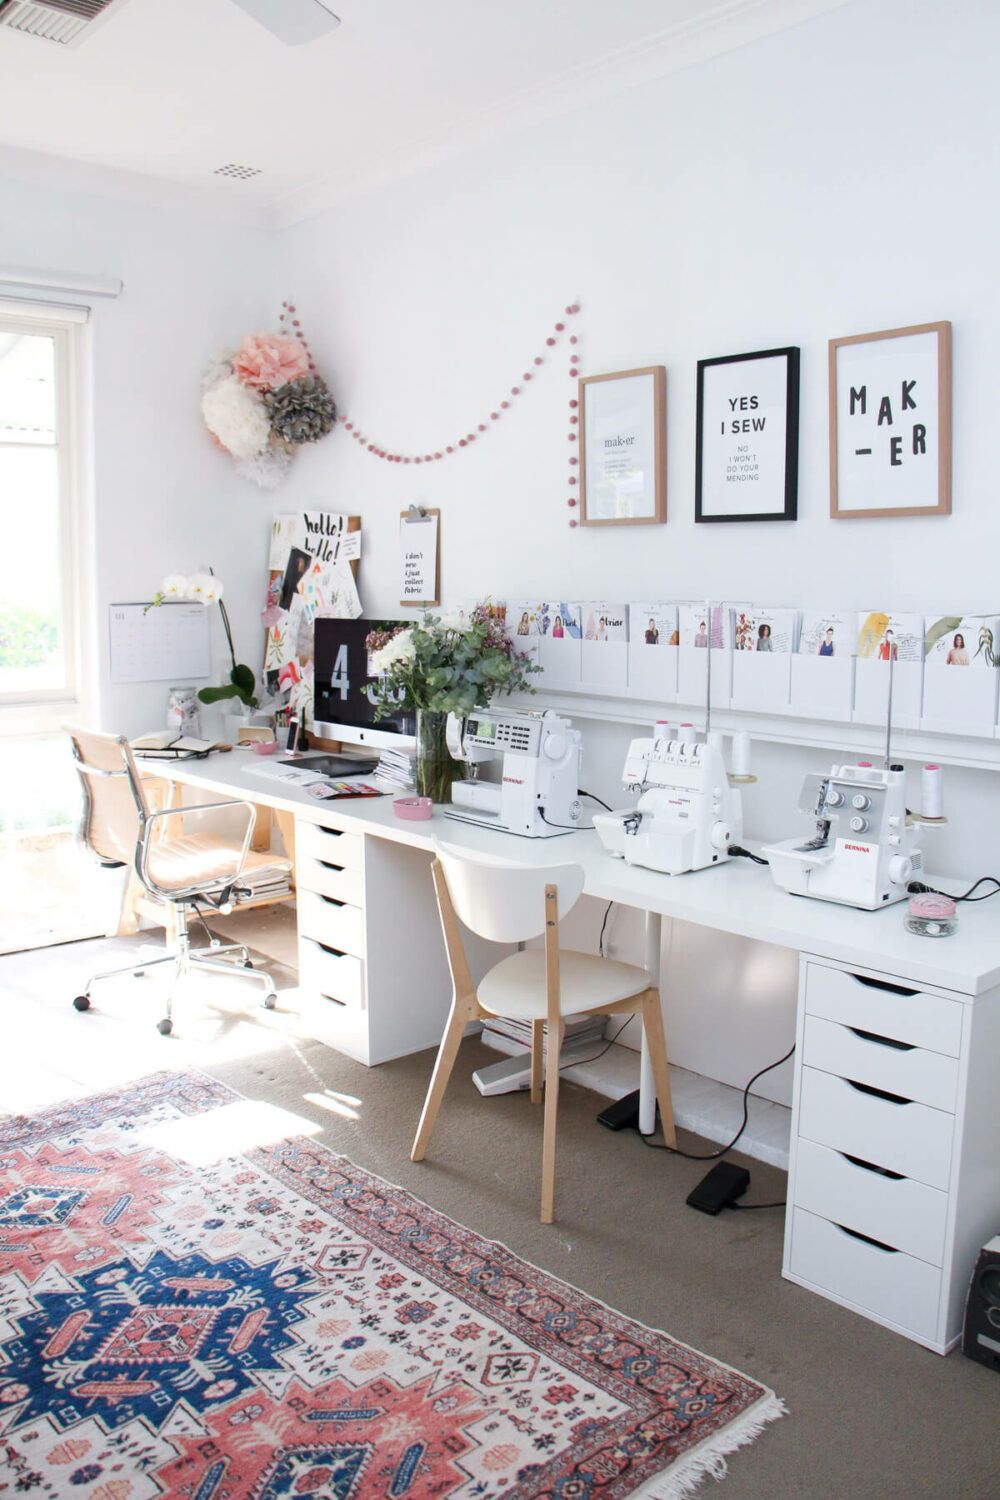 20 Pretty Sewing Room Ideas For An Inspiring Sewing Space 6 Get All Ideas About Home In 2020 Sewing Room Design Sewing Room Inspiration Craft Room Decor